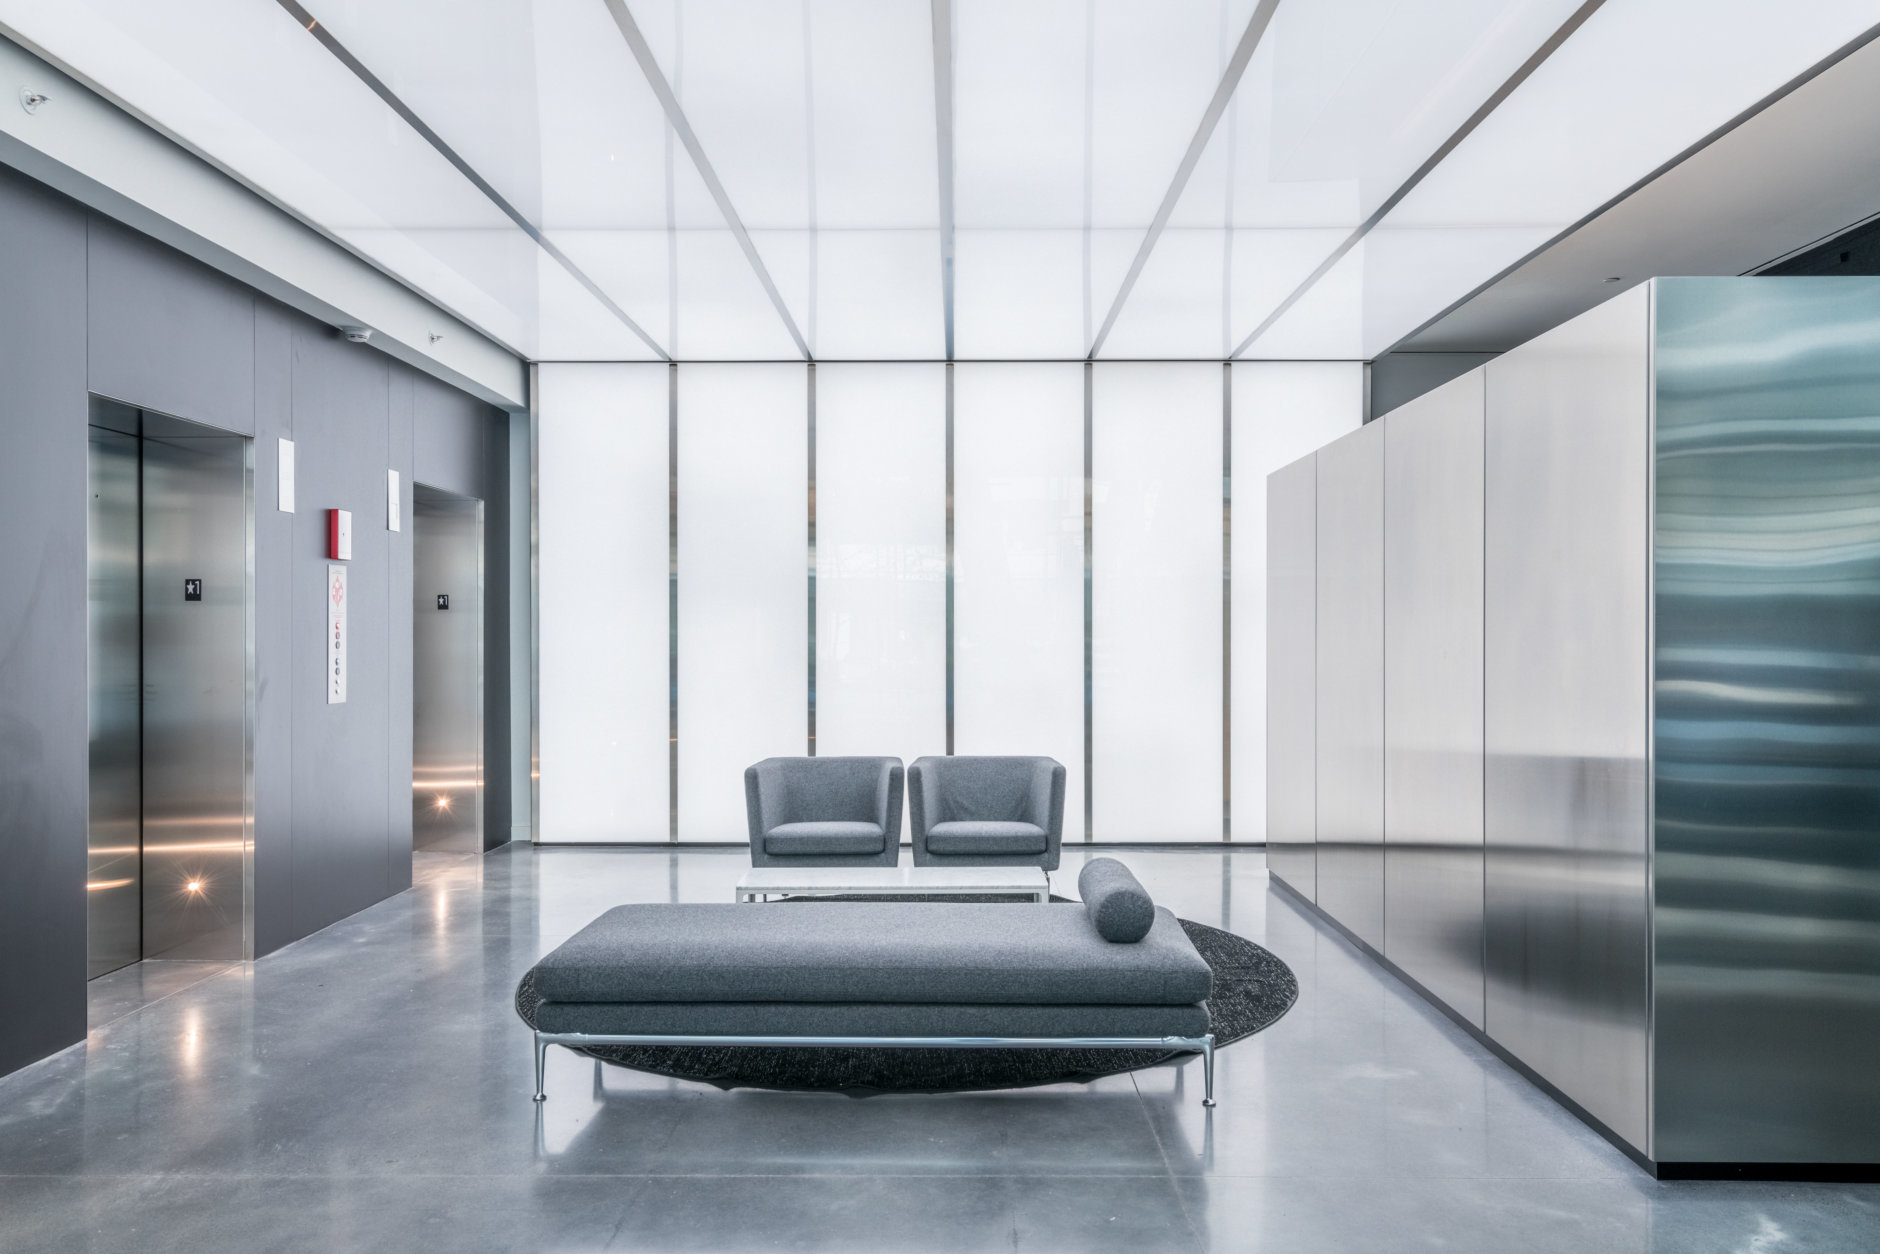 Rents range from $2,750 a month for a 562-square-foot studio to $13,260 a month for a 2,400-square-foot, three-bedroom corner residence with views of the Circle and the District skyline. (Courtesy Eastbanc)